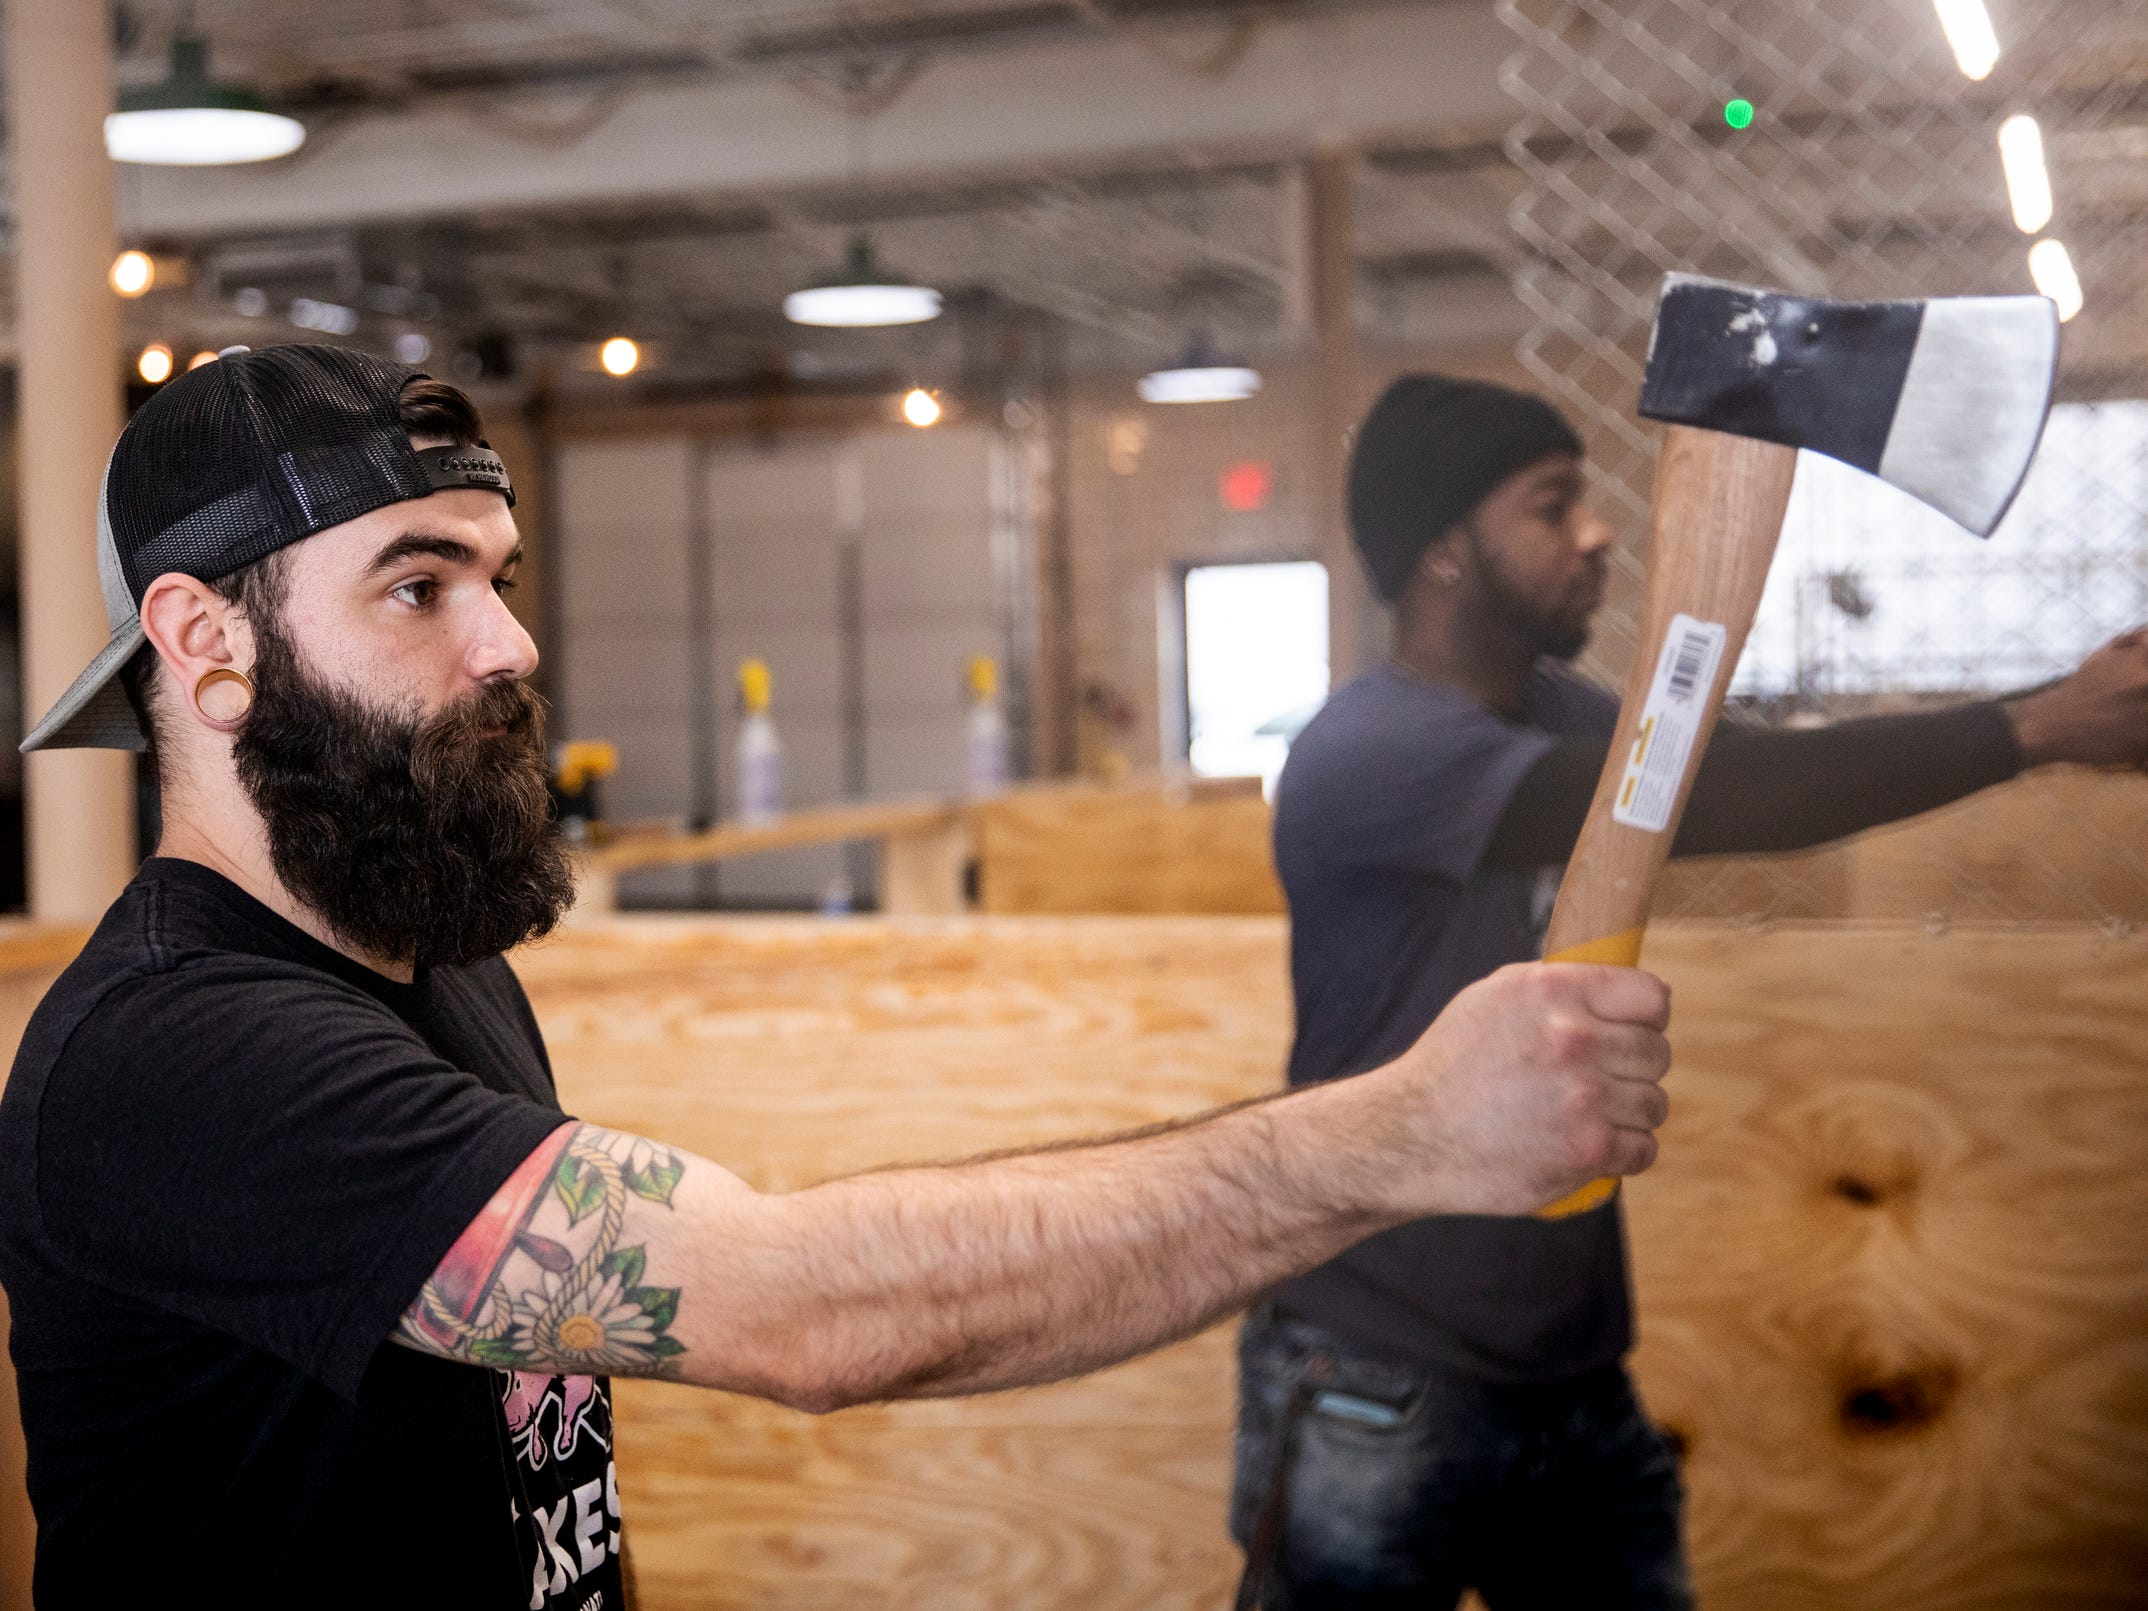 Ryan Bell, a coach at Urban Axes Cincinnati, demonstrates axe throwing at Urban Axes Cincinnati Tuesday, January 15, 2019 at a media preview. Urban Axes offers group bookings, walk-ins and leagues.